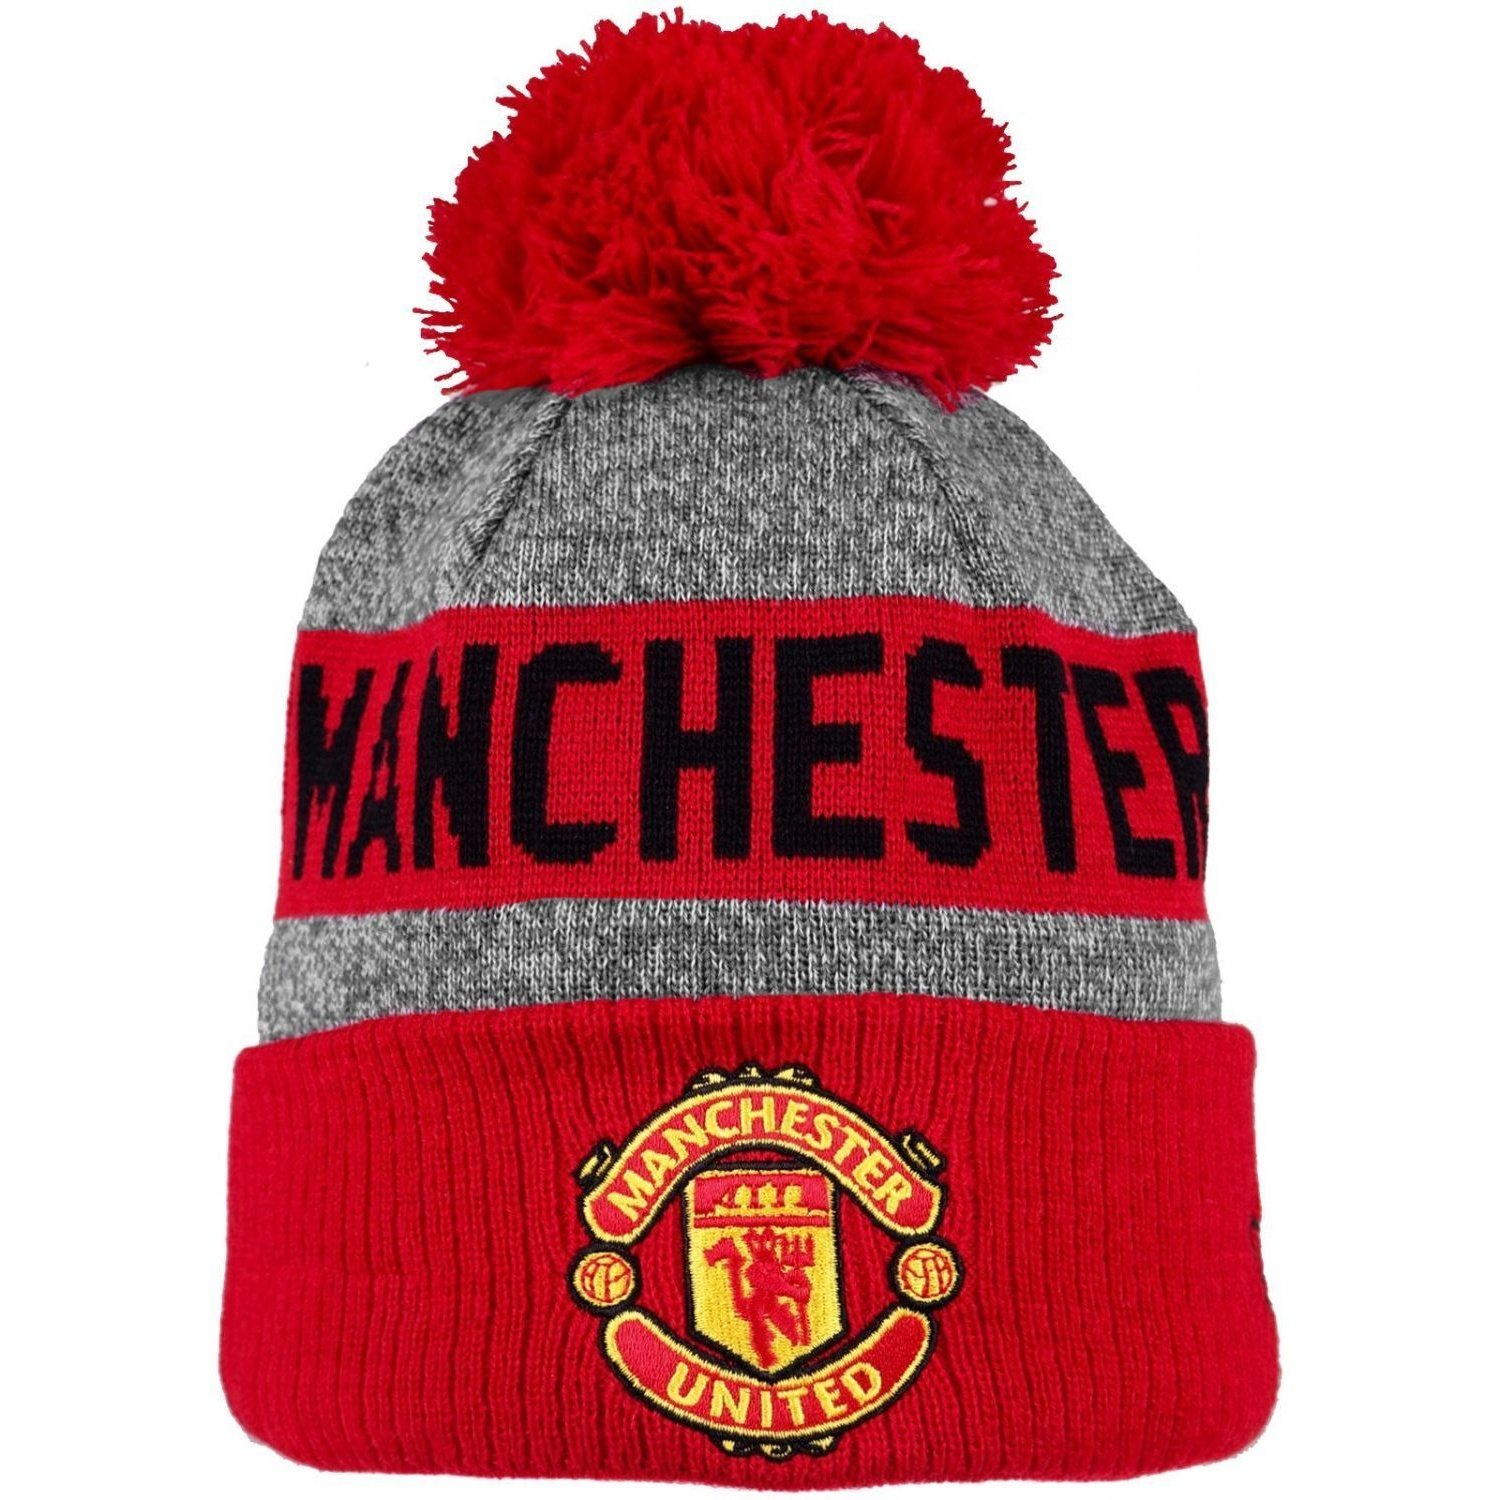 New Era Manchester United Fc Bobble Hat Marl Crown Grey Red